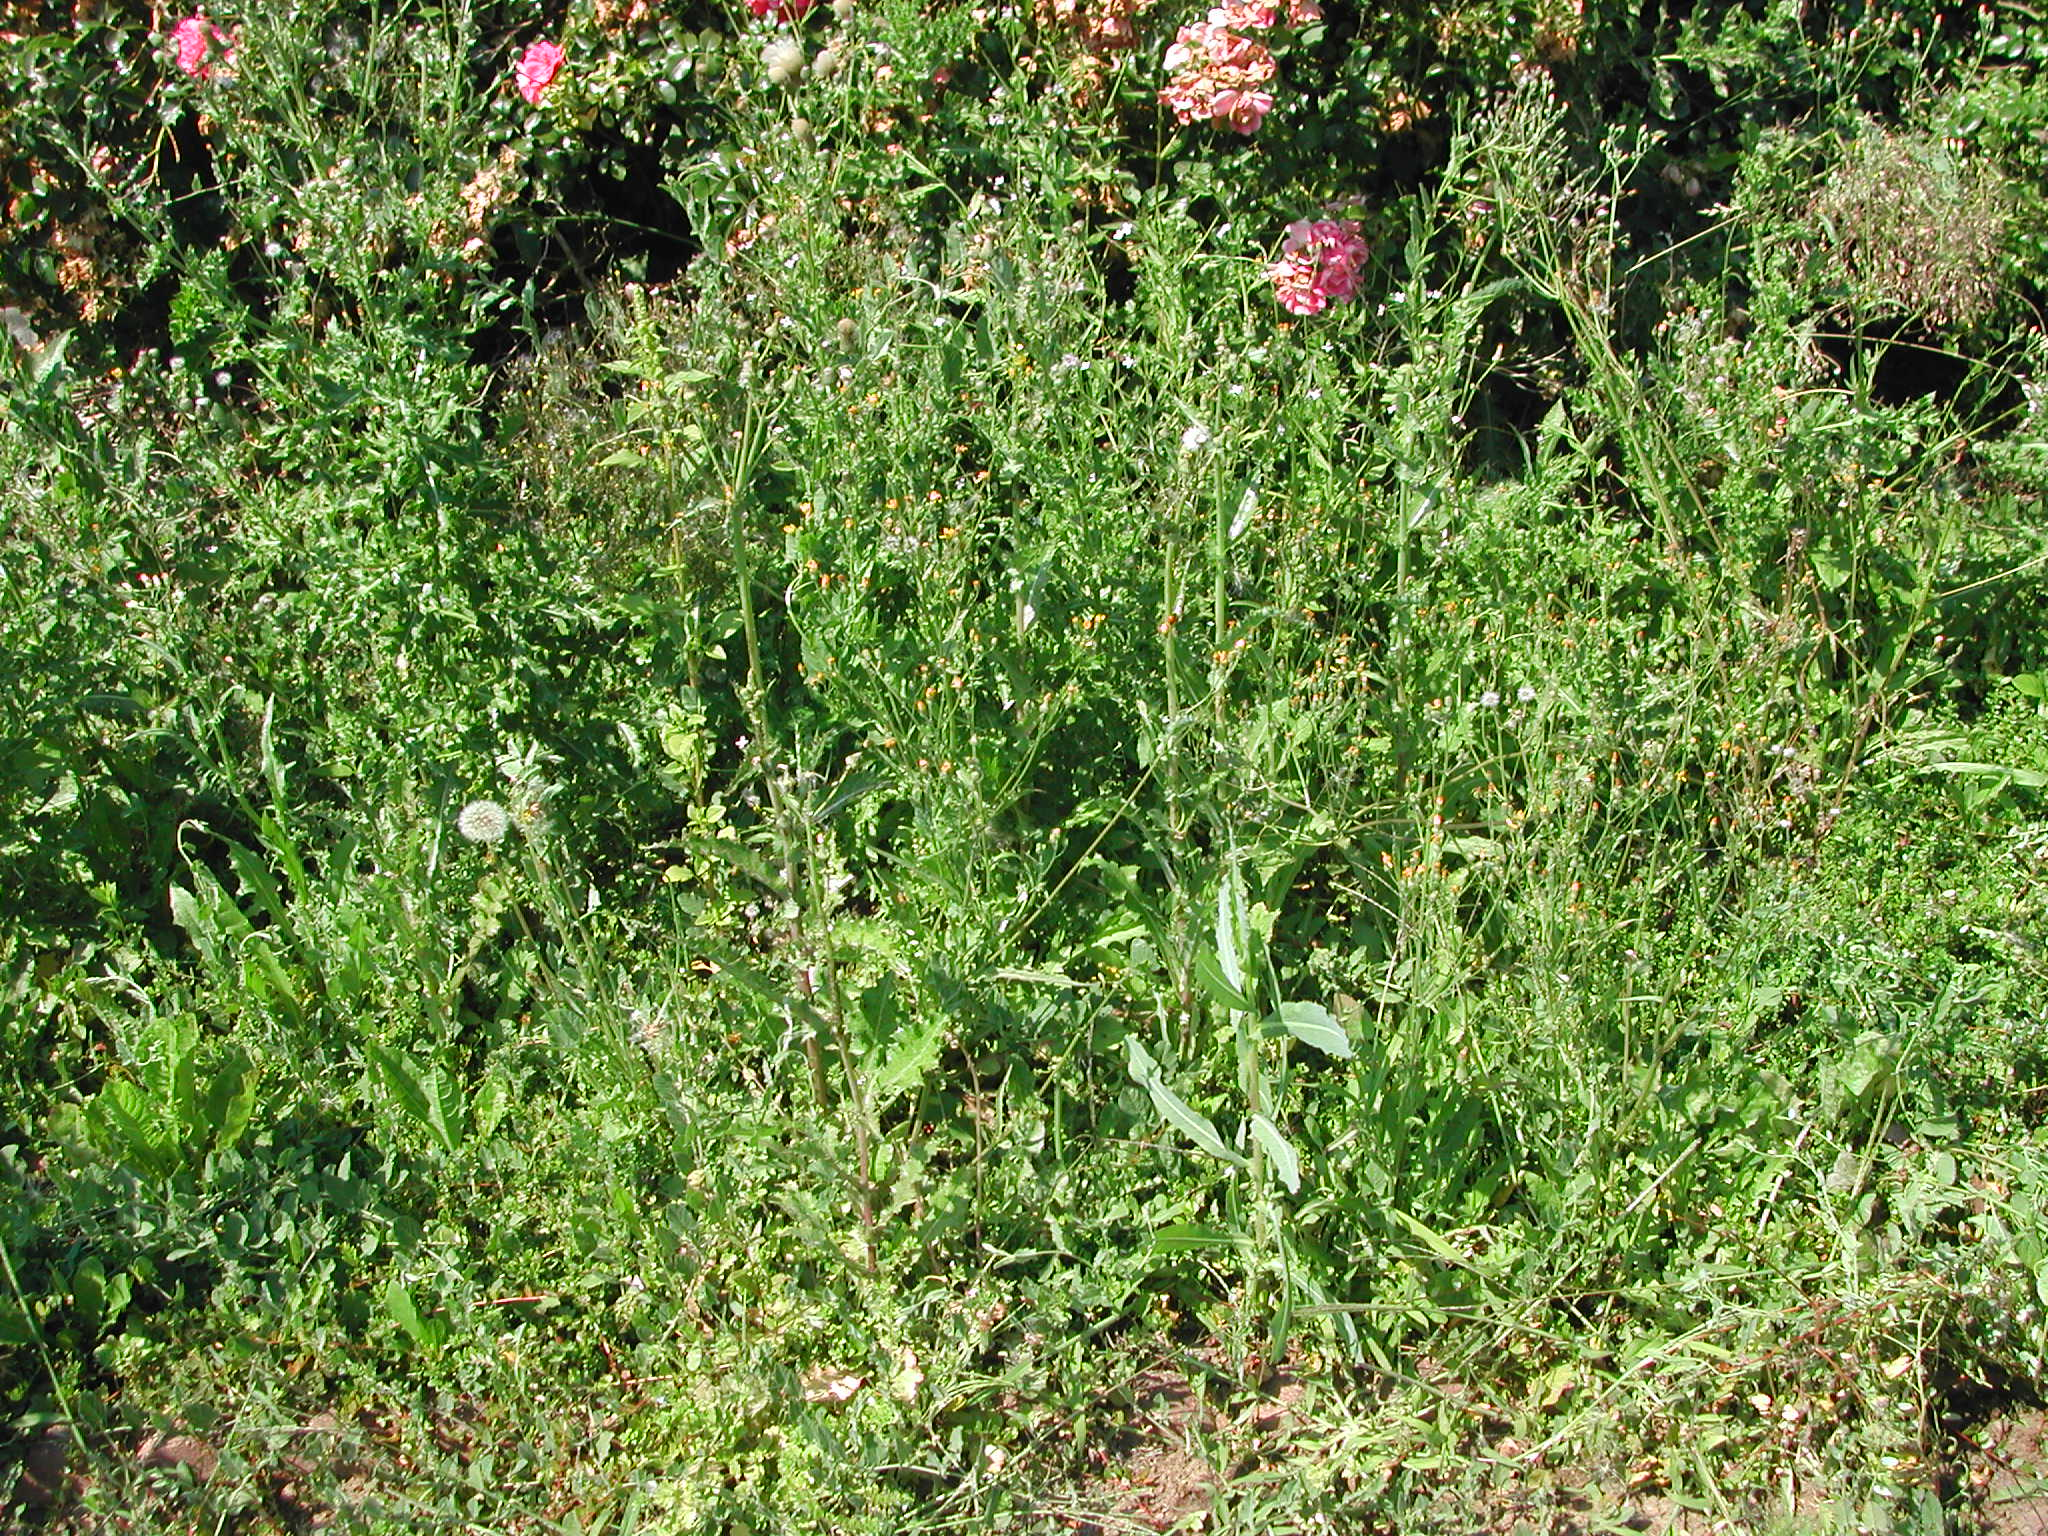 Before: Yes, there are cranberries under those weeds.